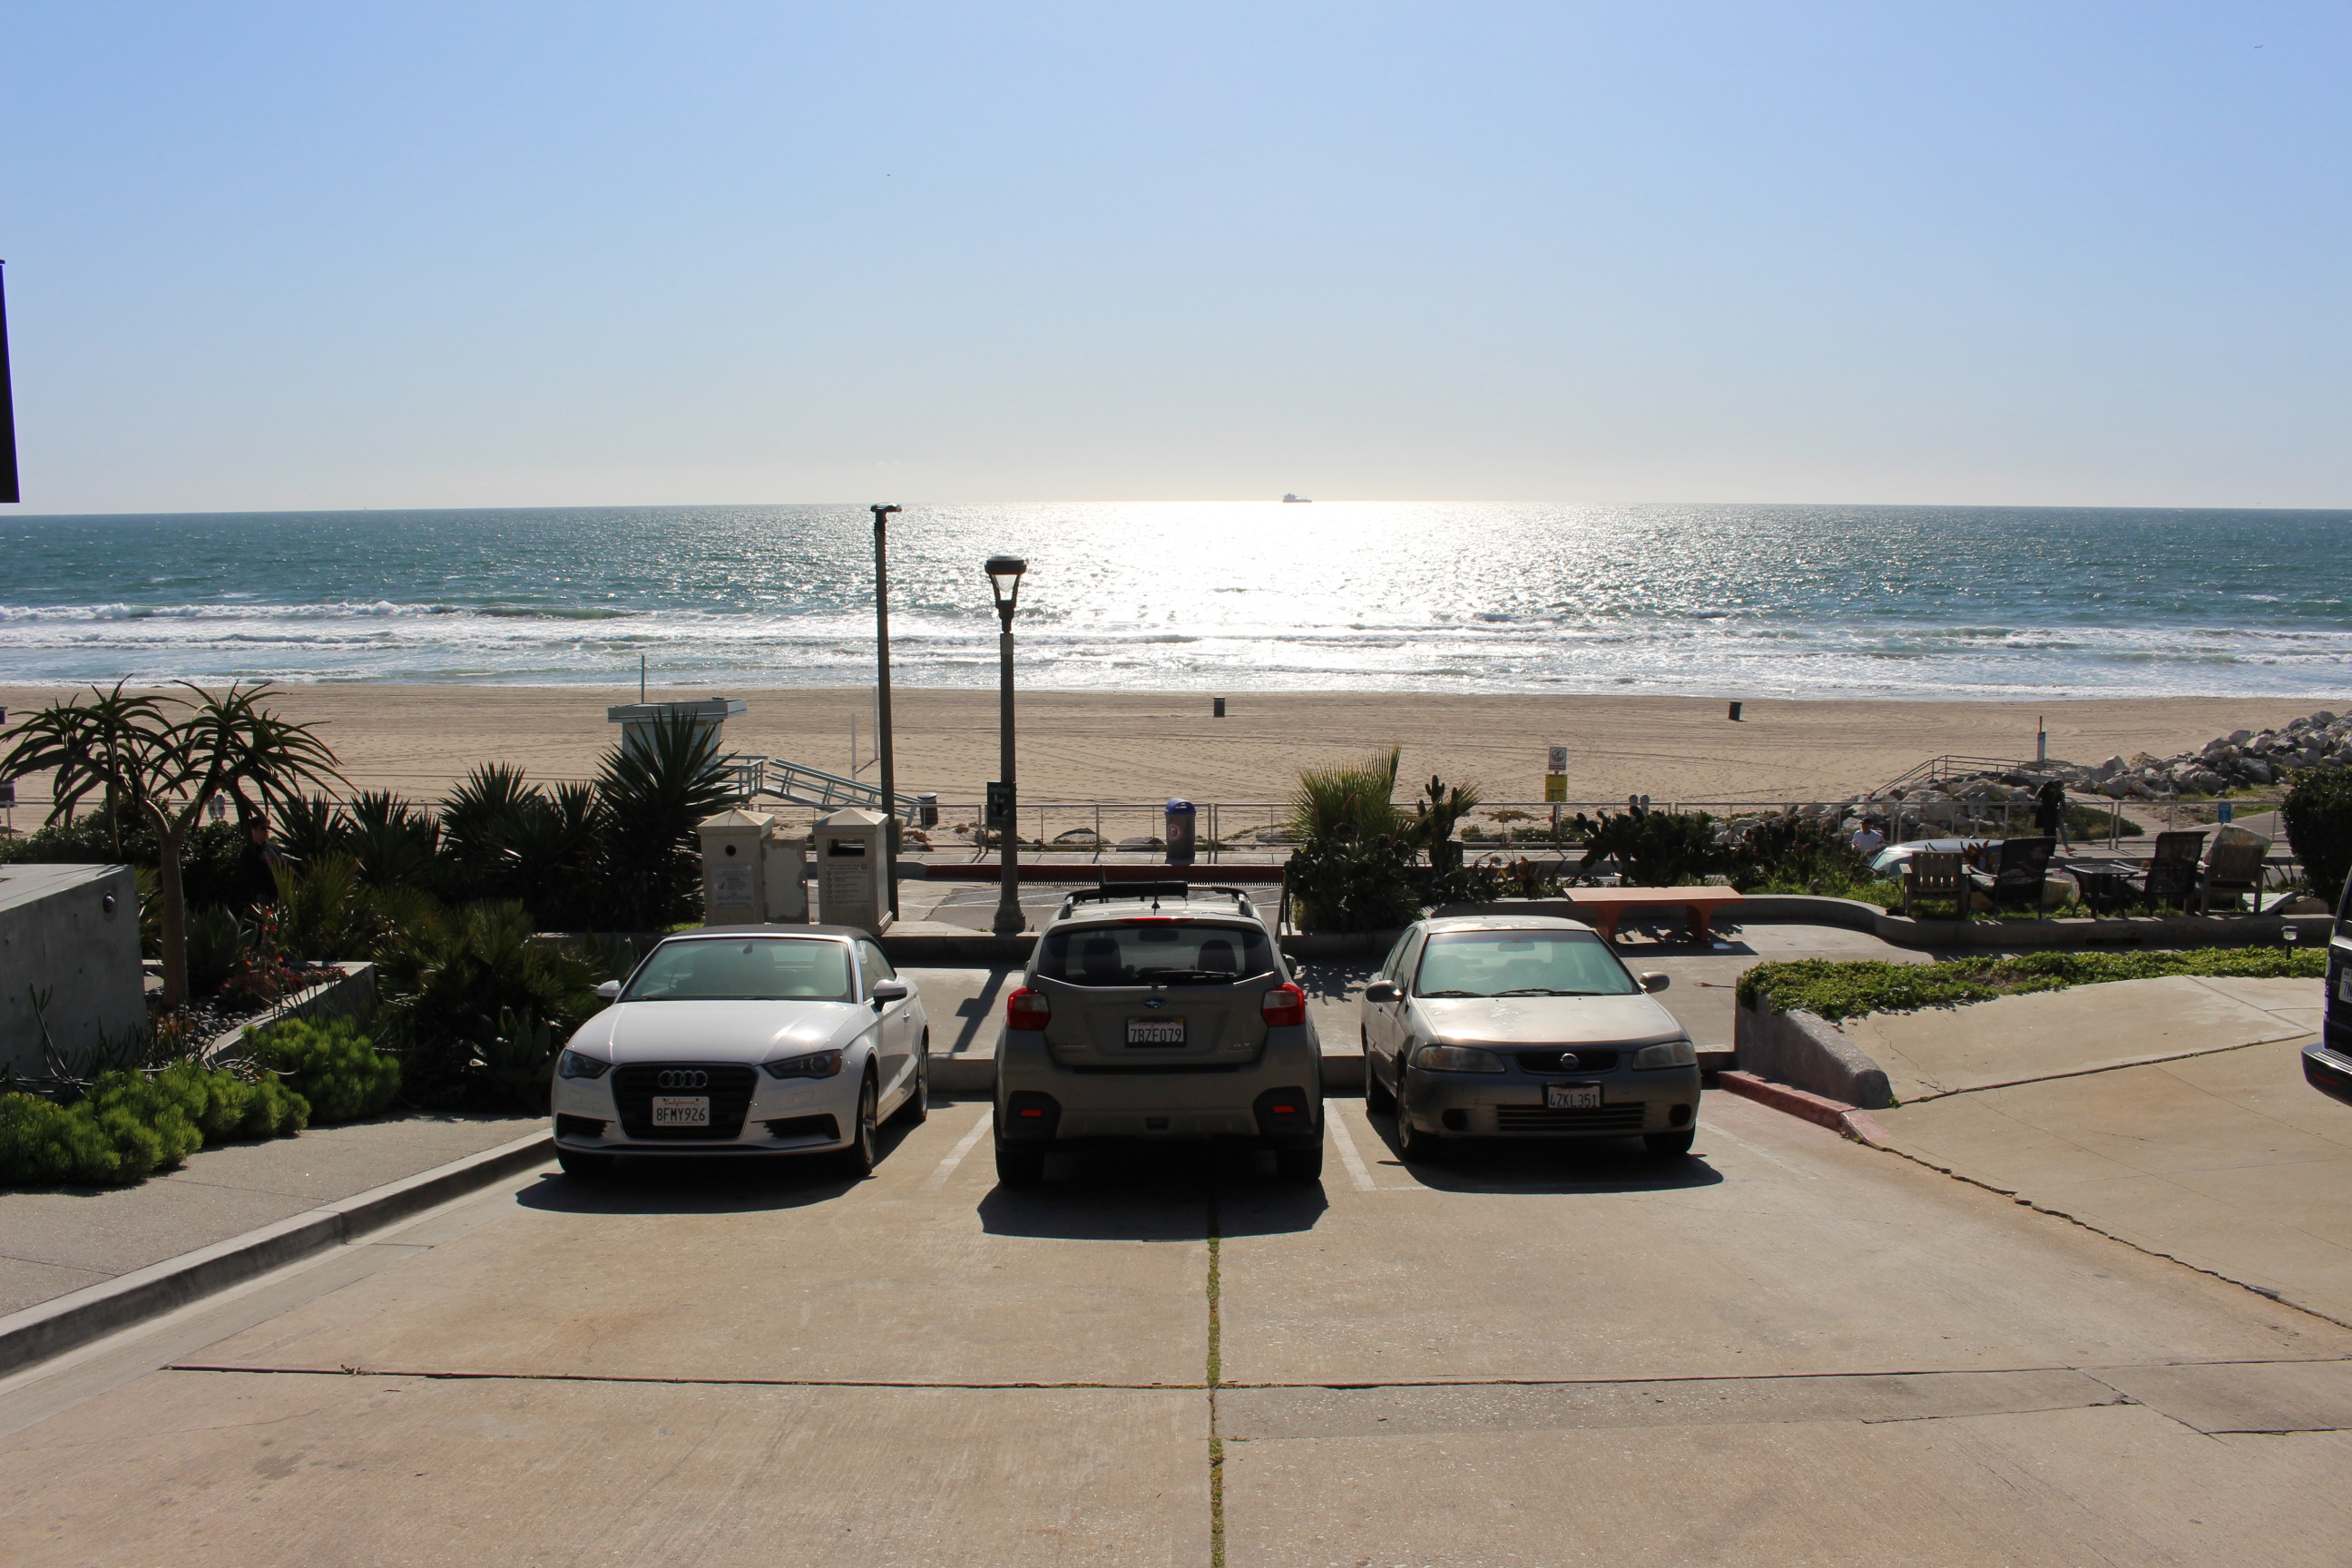 Cars parked near the beach, view of the ocean, taken on March 26, 2020 | Karen Foshay